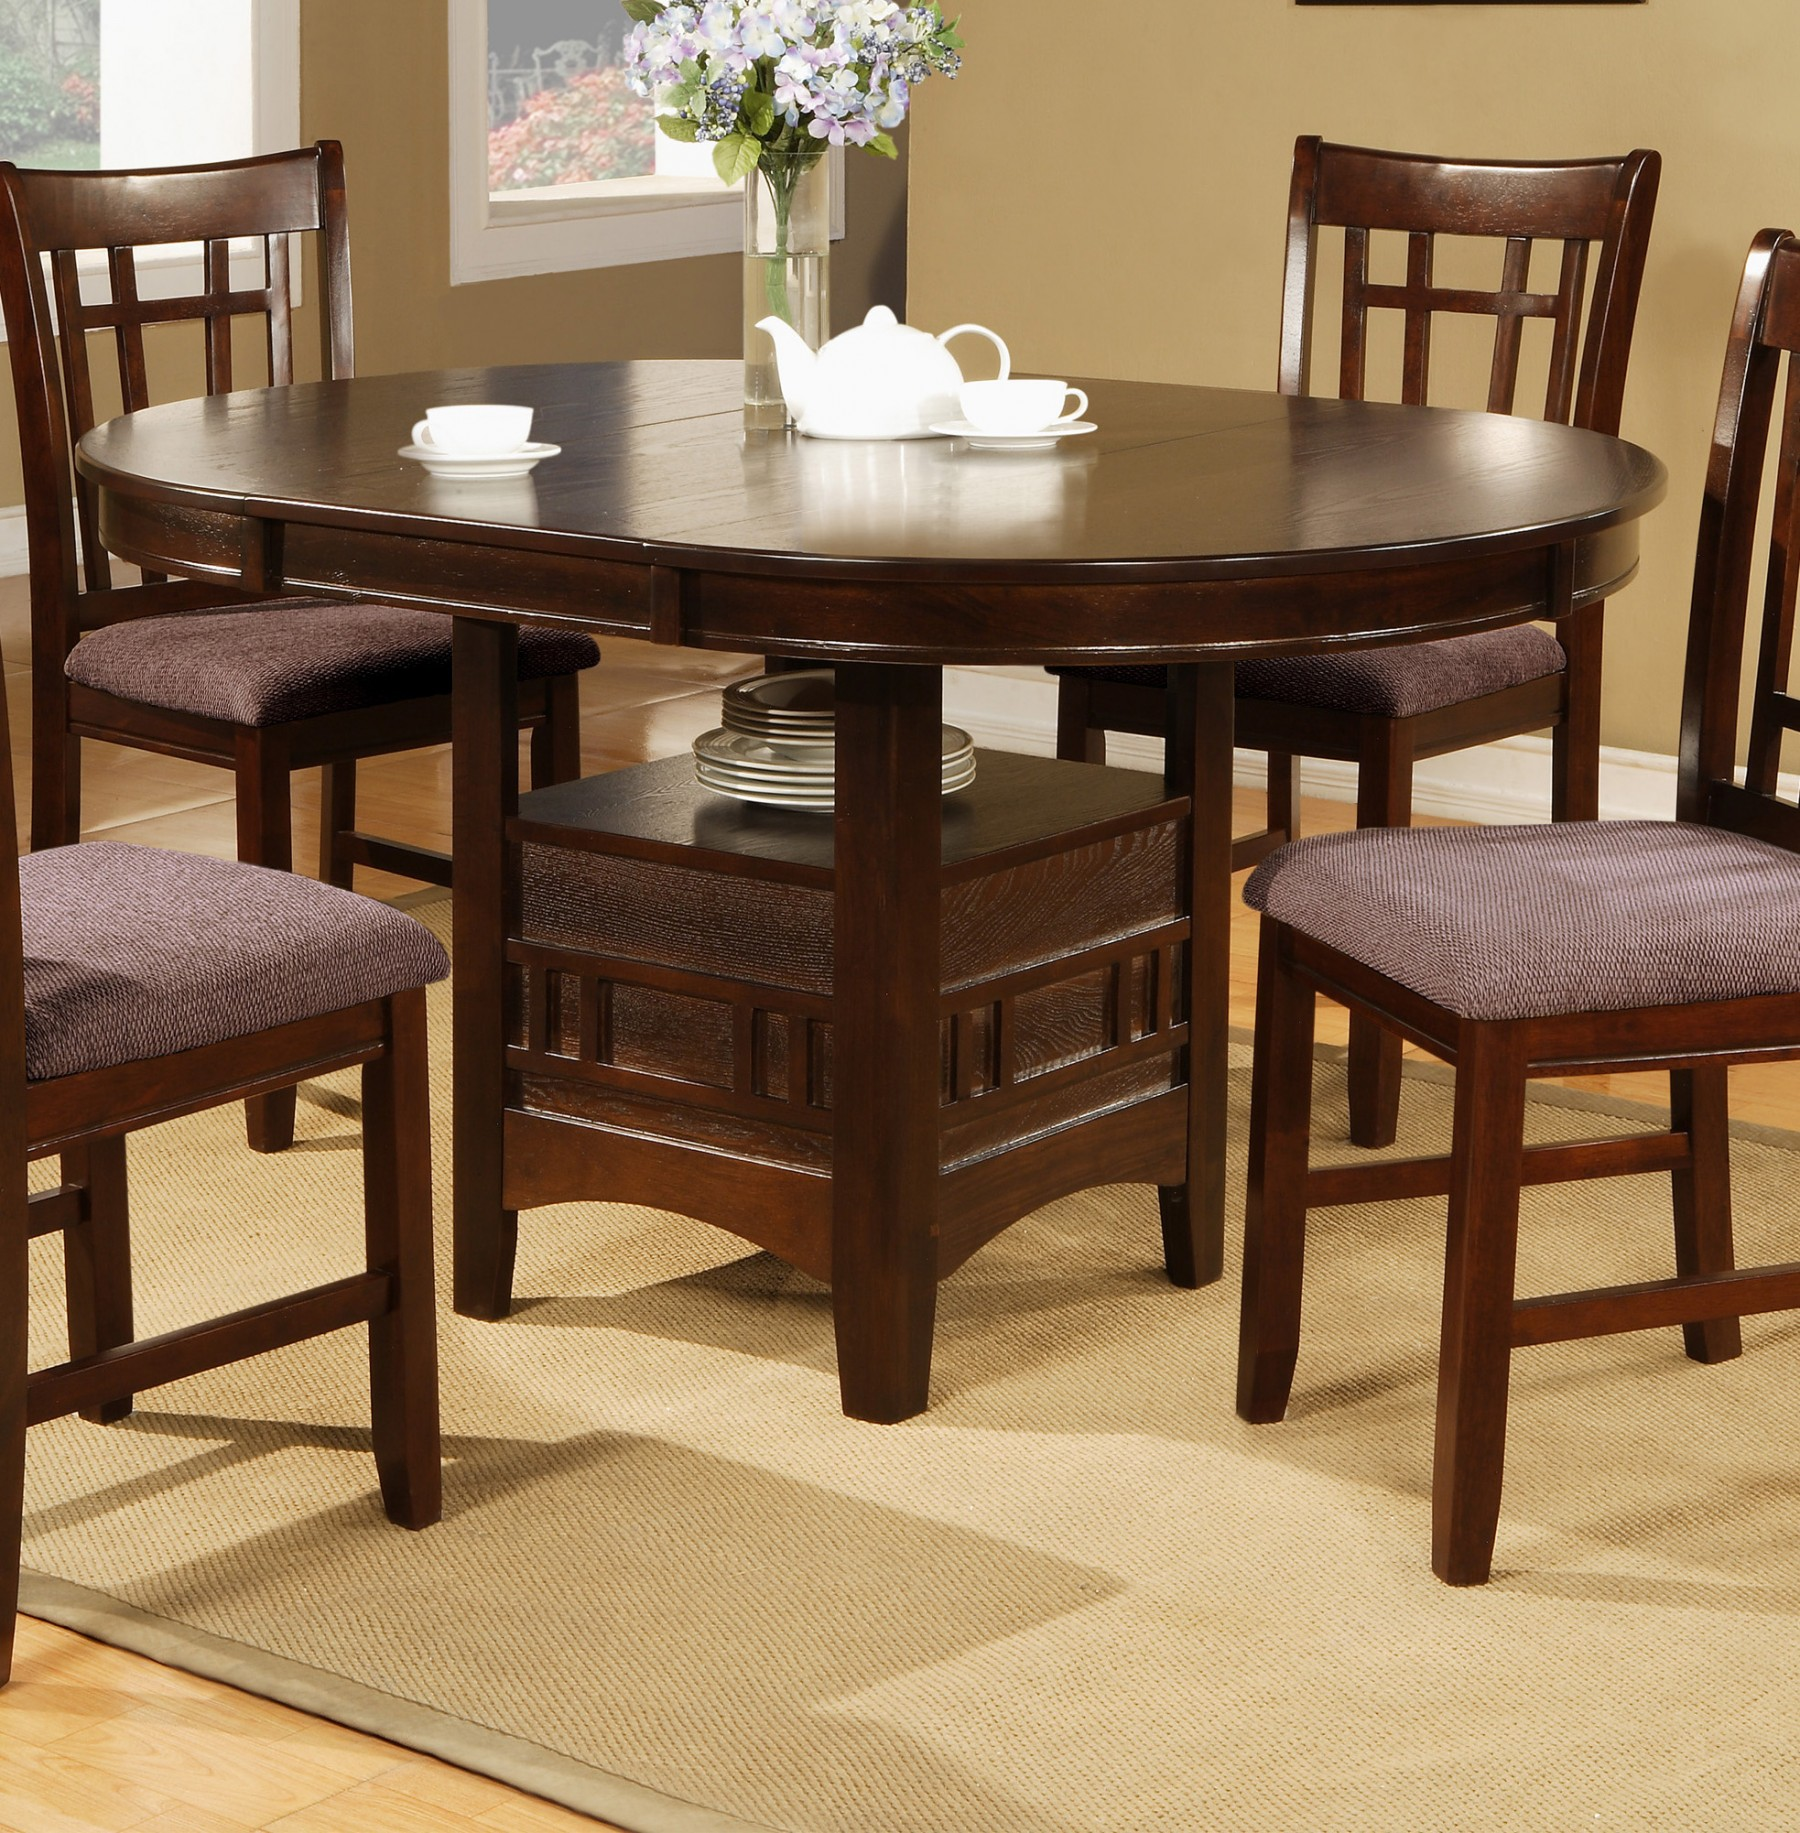 5pc Espresso Dining Room Kitchen Set Table 4 Brown: 5pc Espresso Dining Room Table W/4 Side Fabric Chairs Seat